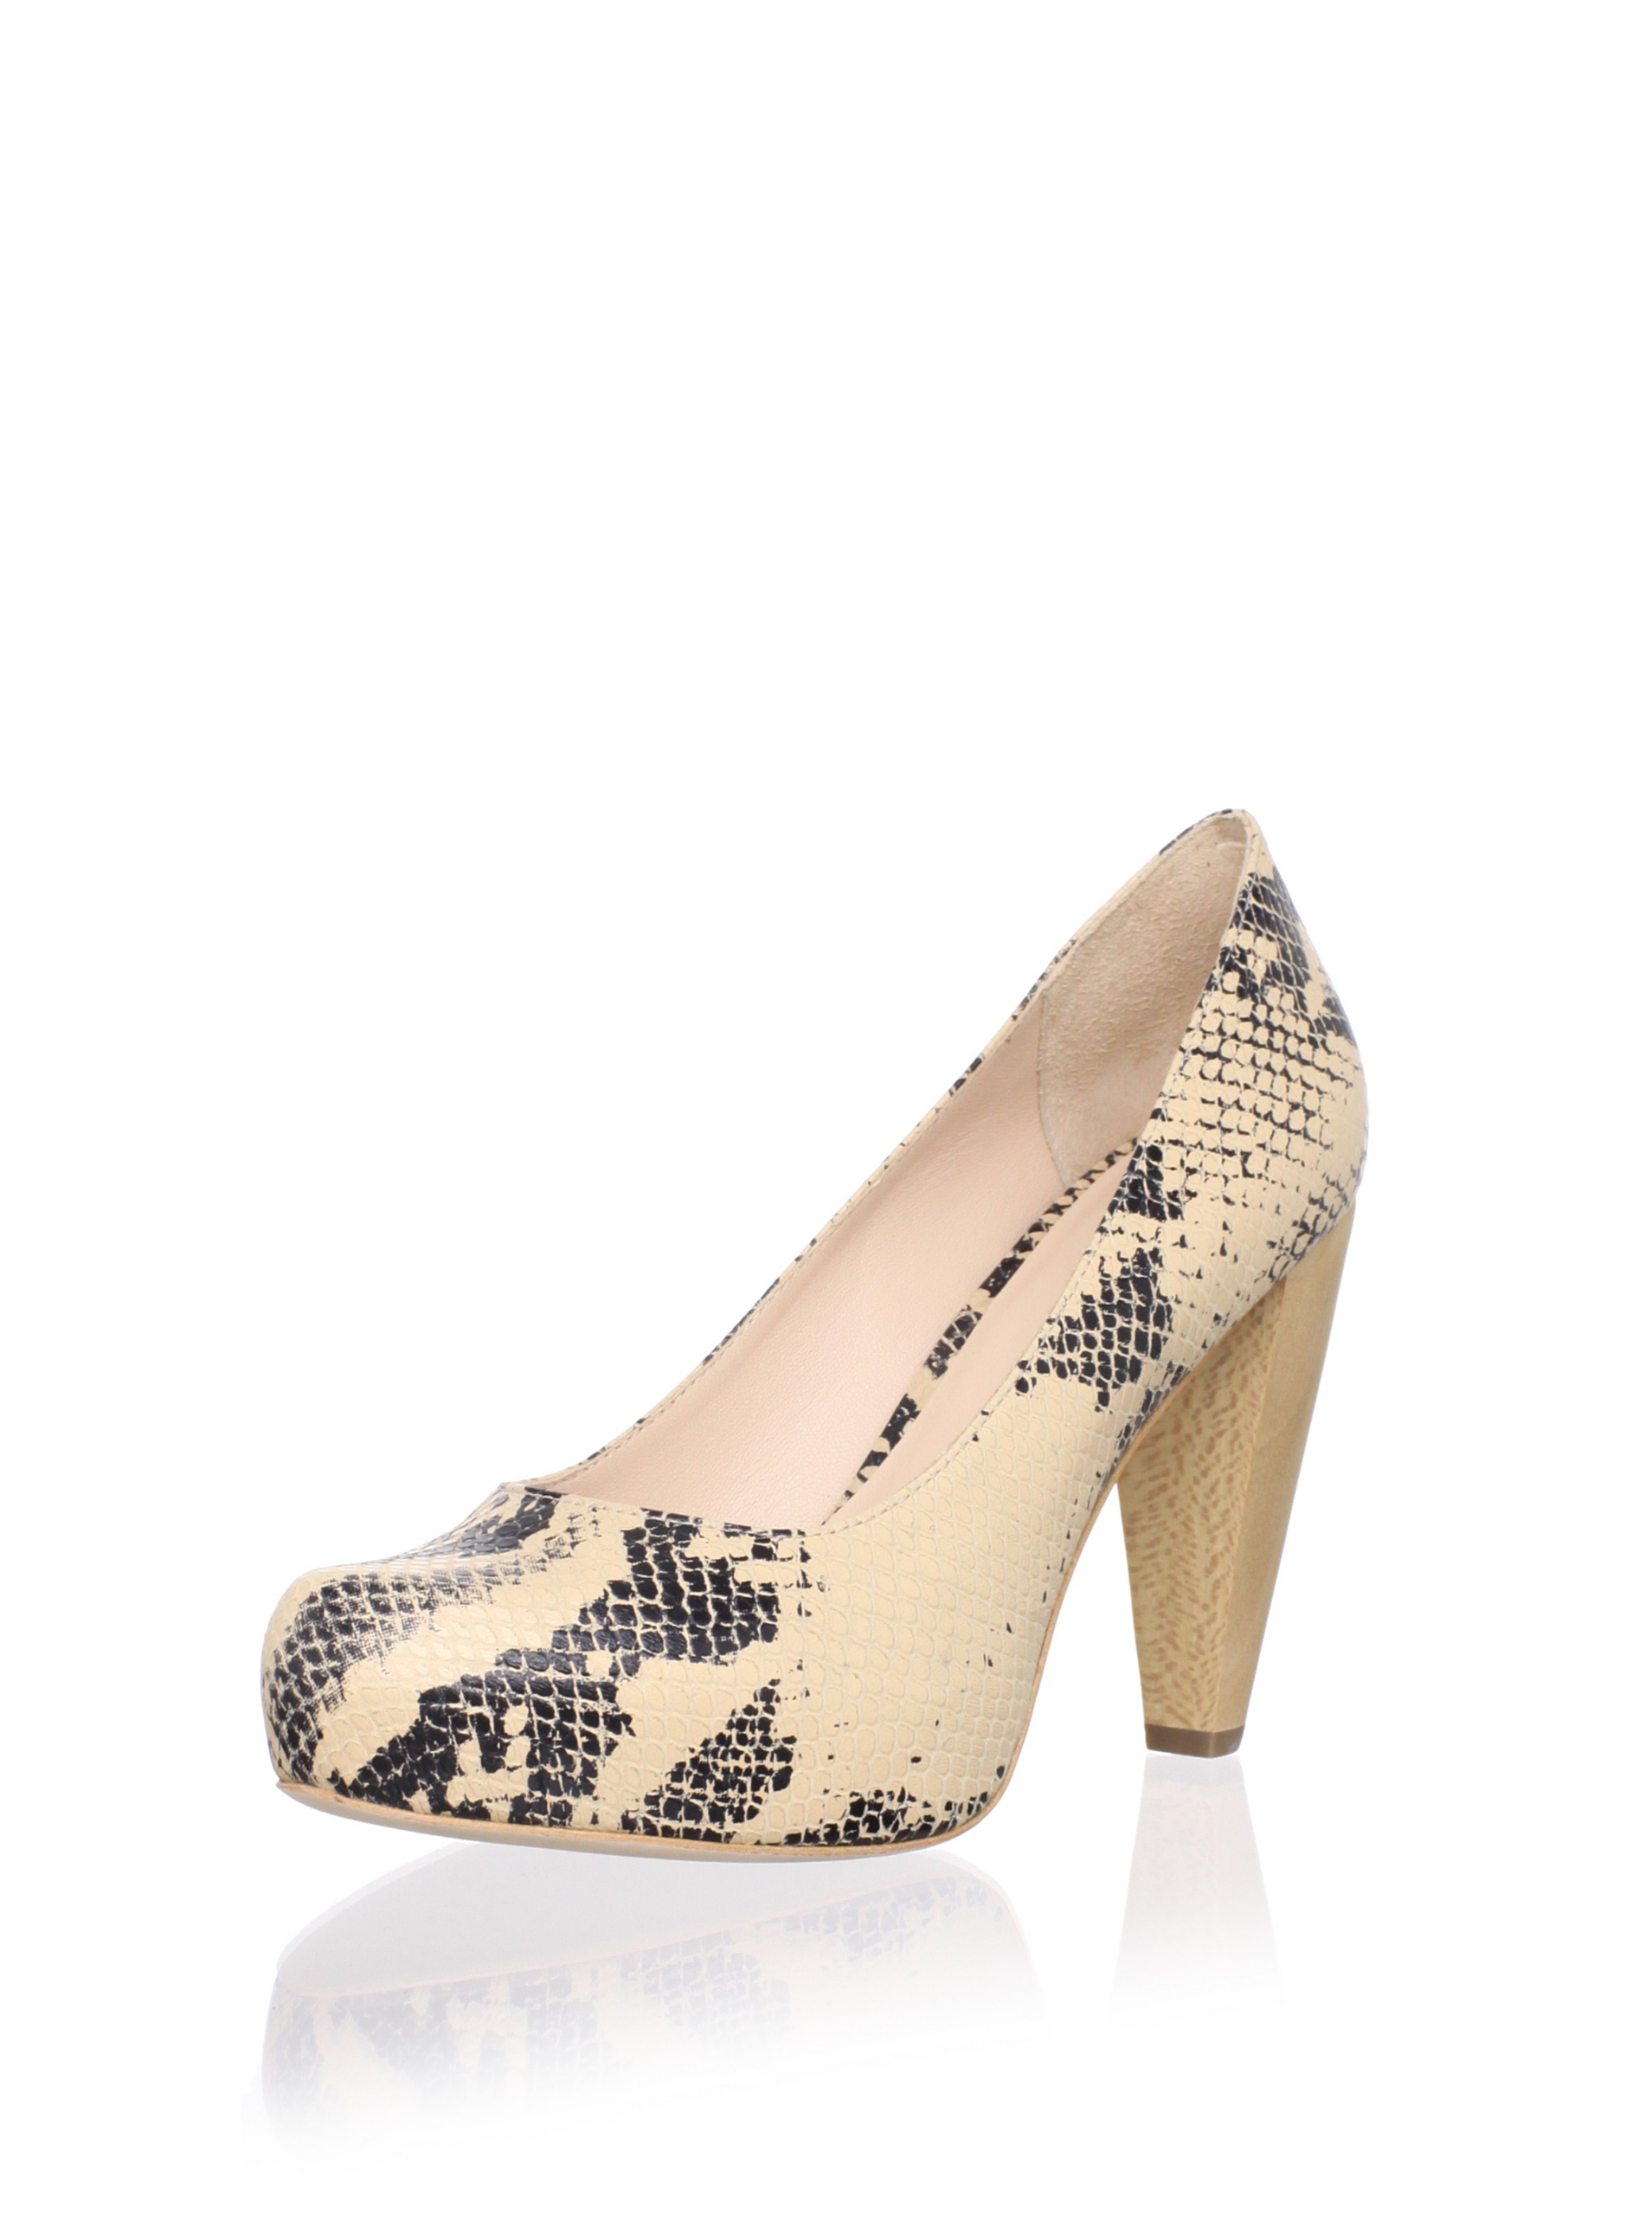 Loeffler Randall Women's Esther Hidden Platform Pump (Natural)